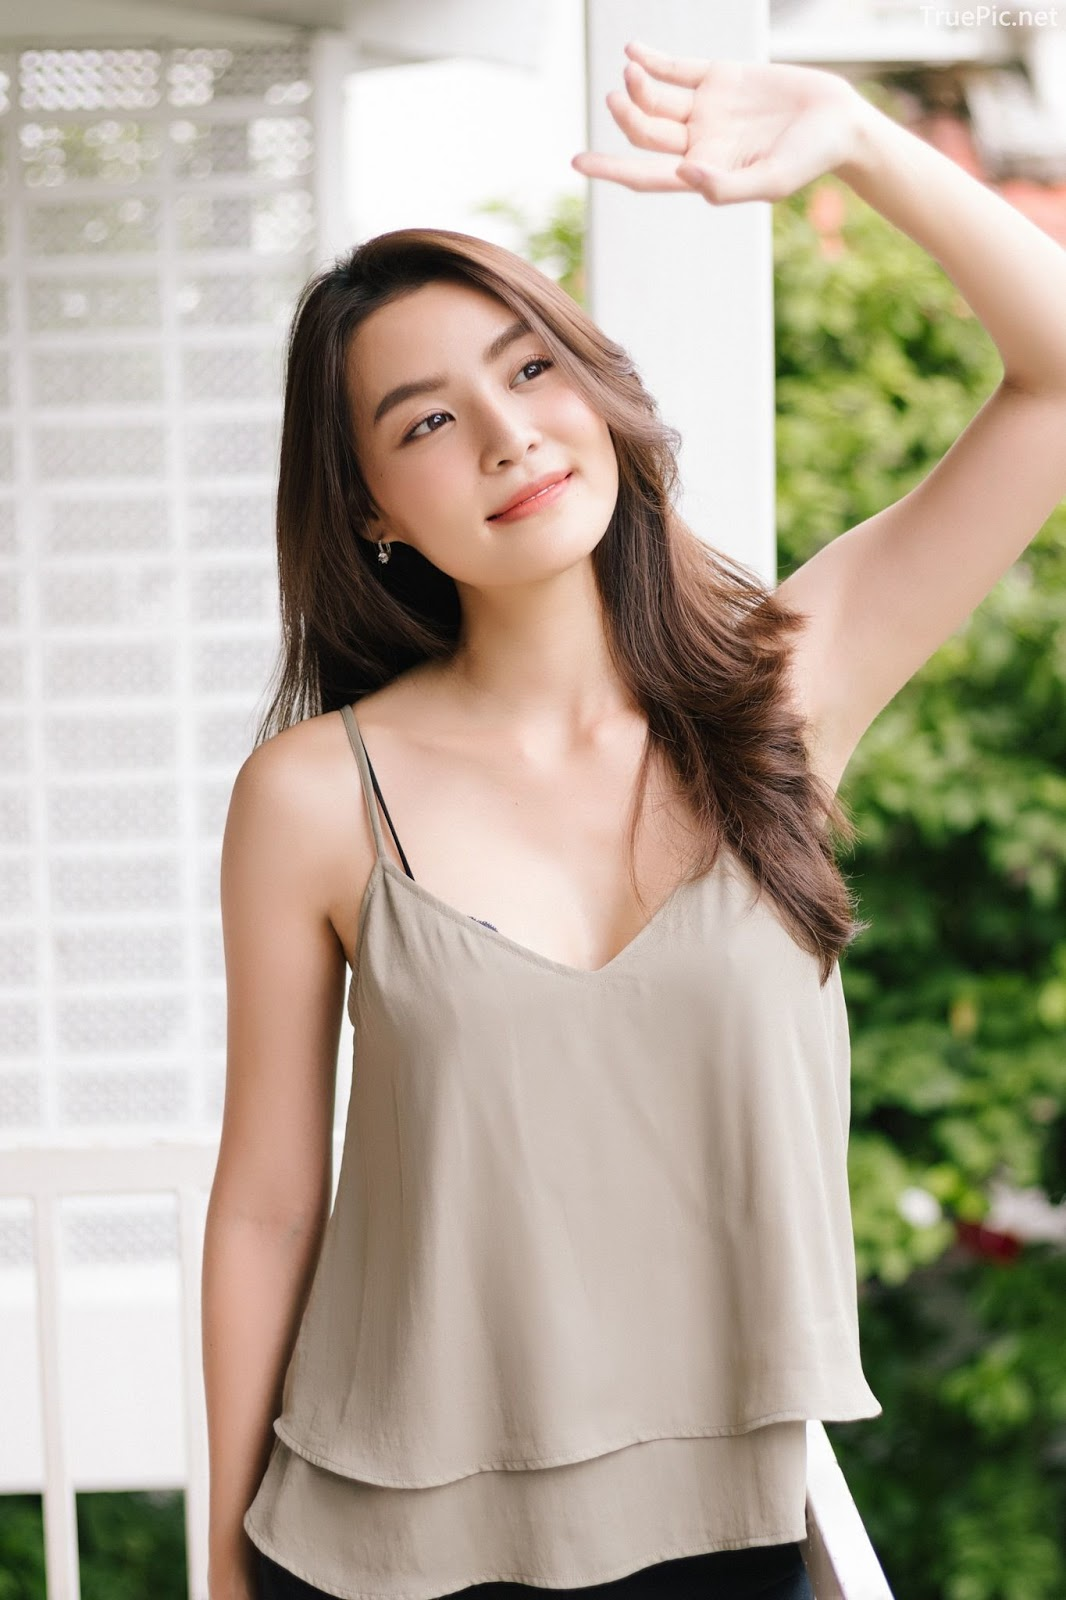 Beauty Thailand Kapook Phatchara so attractive with photo album Bloom with grace - Picture 5